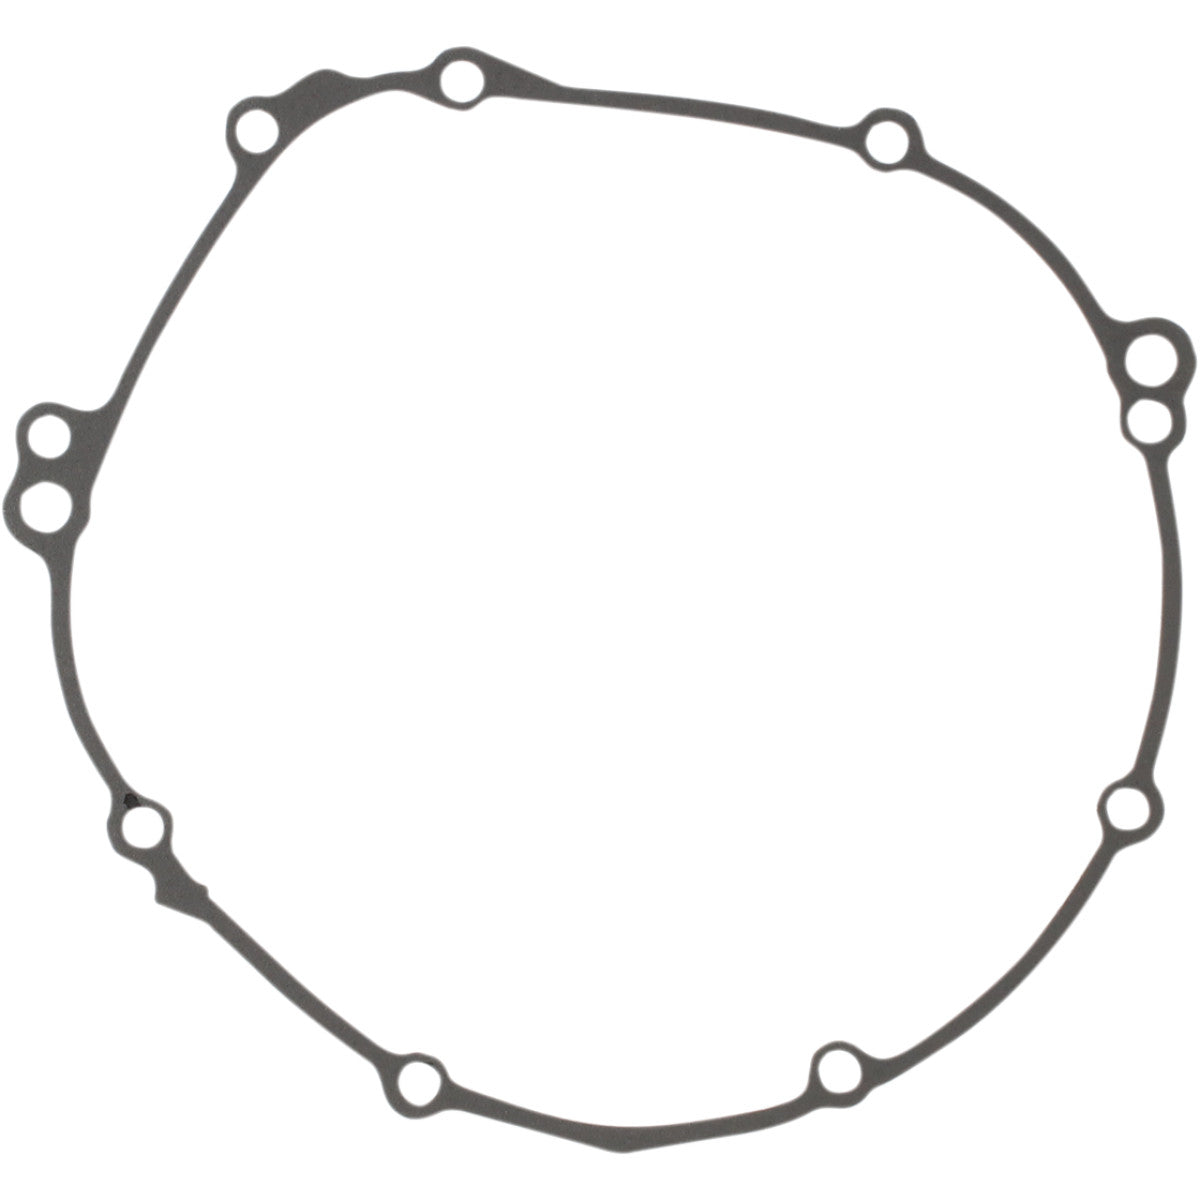 0934-3994 COMETIC Clutch Cover Gasket GASKET CLUTCH YAMAHA